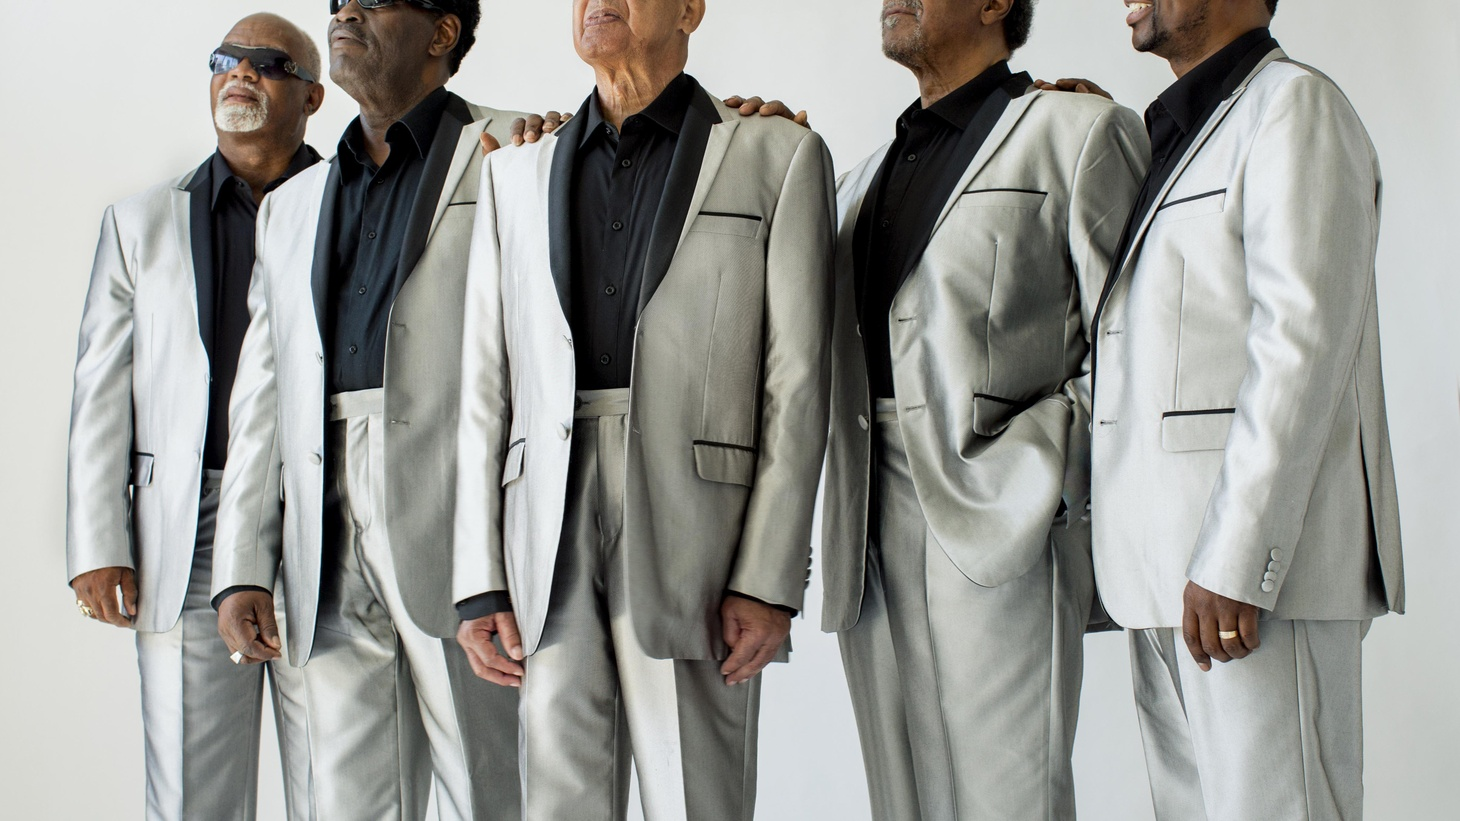 The Blind Boys of Alabama have been making beautifully inspired music for seven decades.